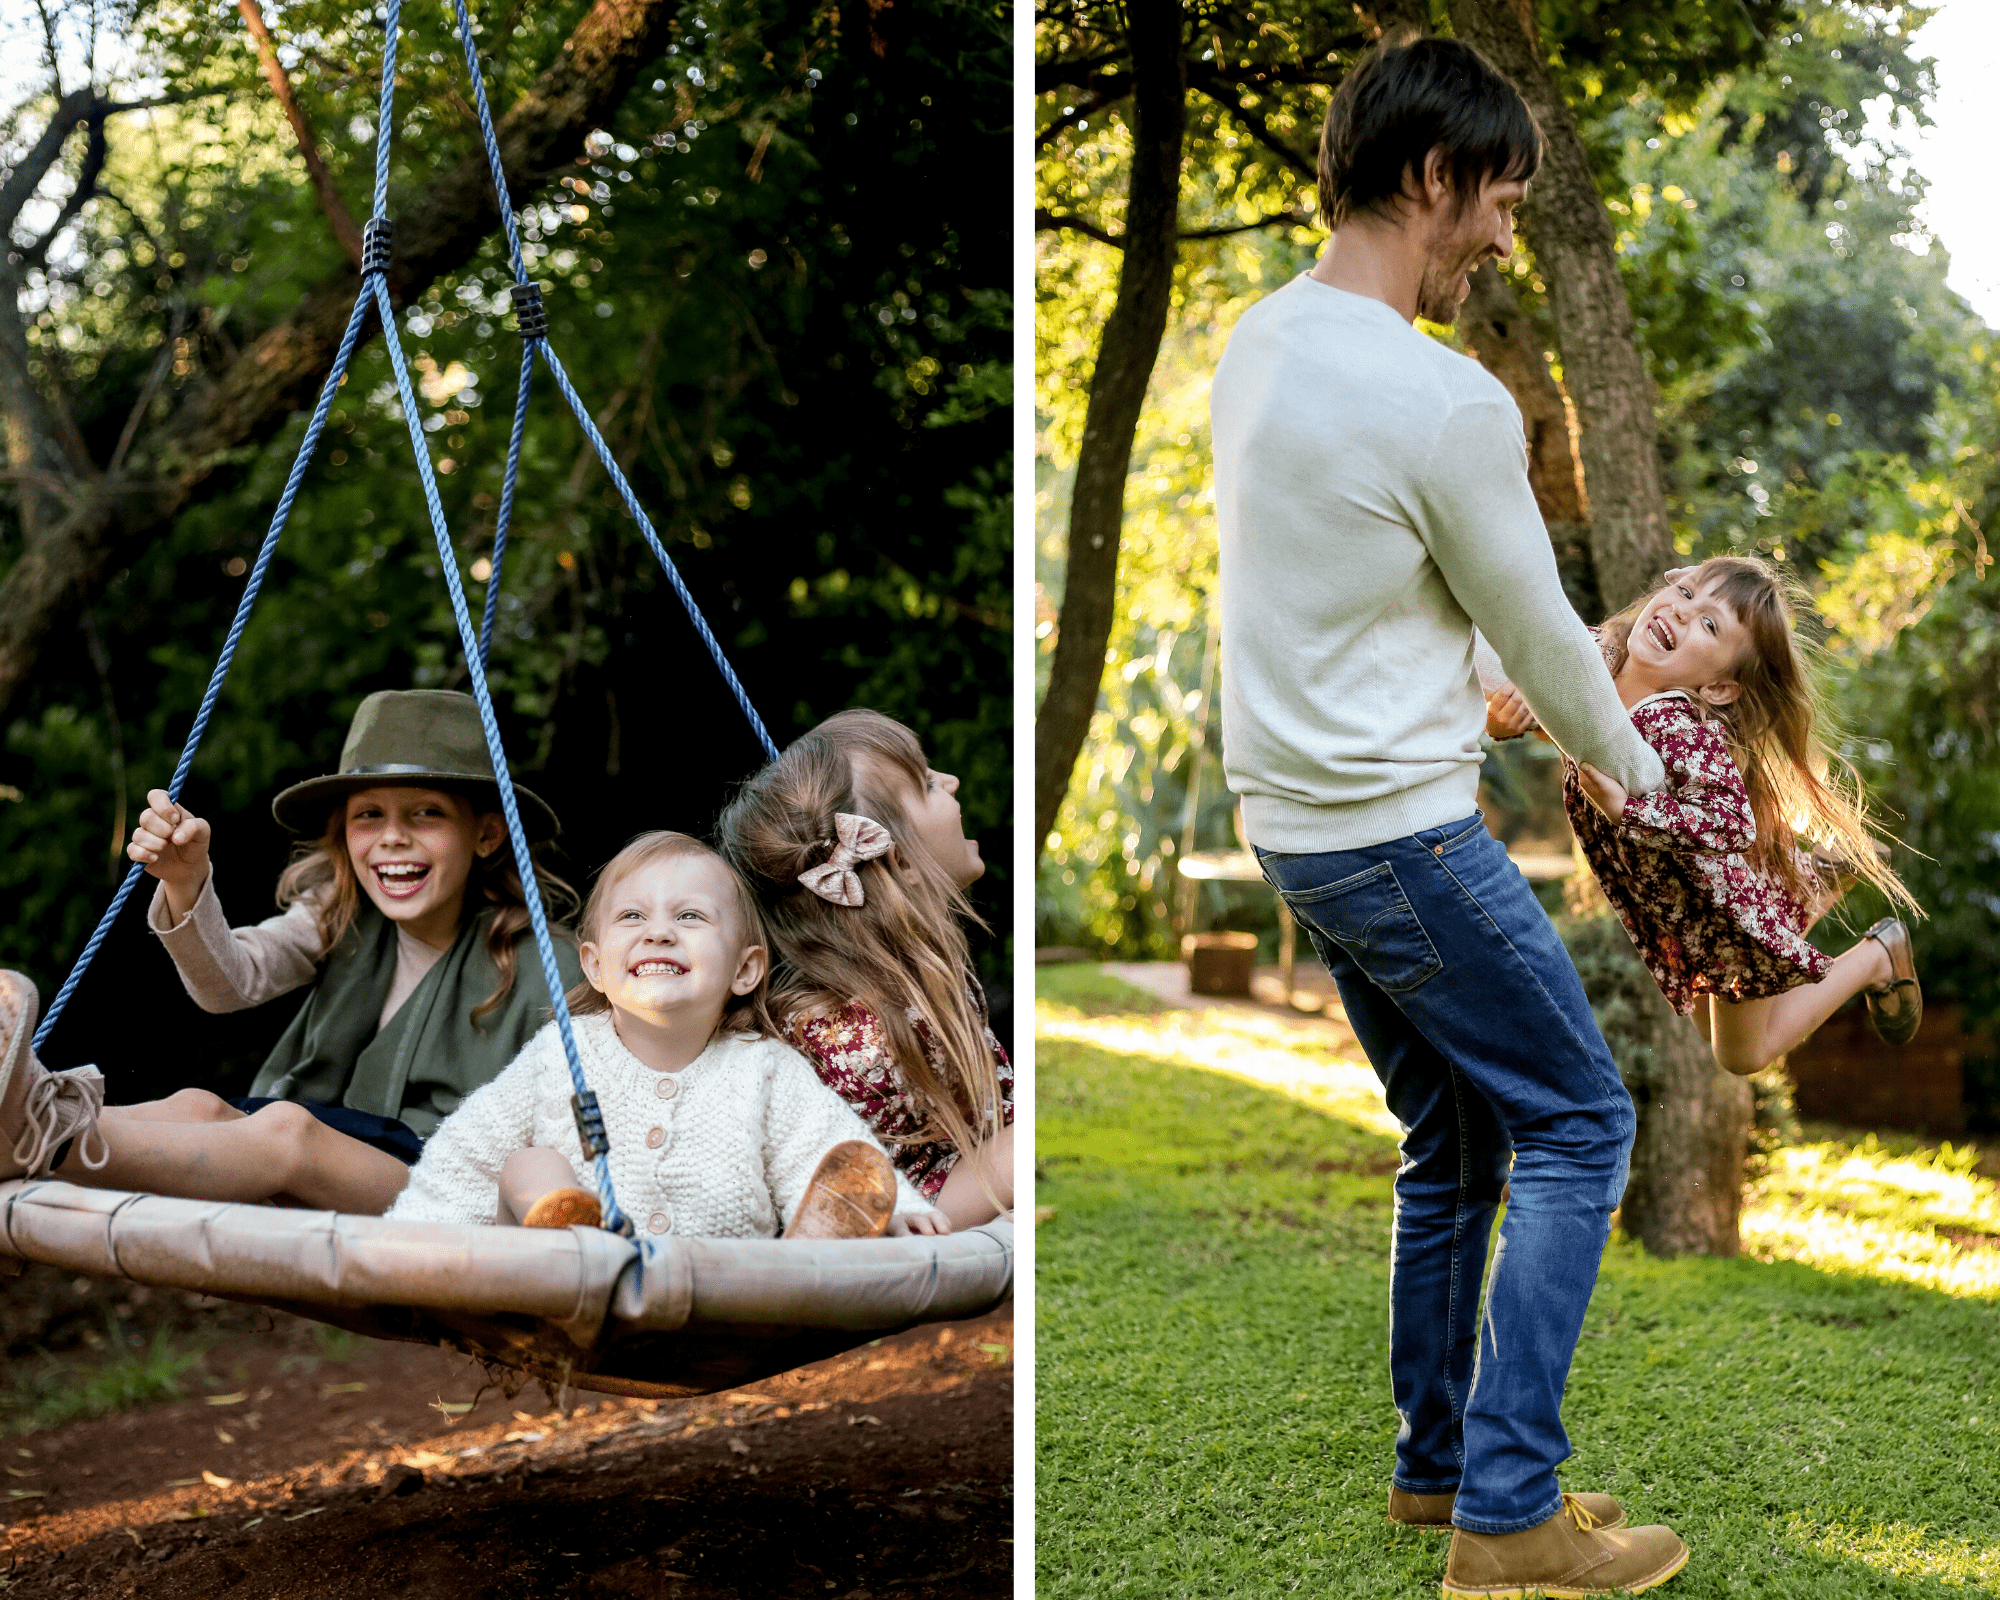 How To Do A Family Photoshoot At Home